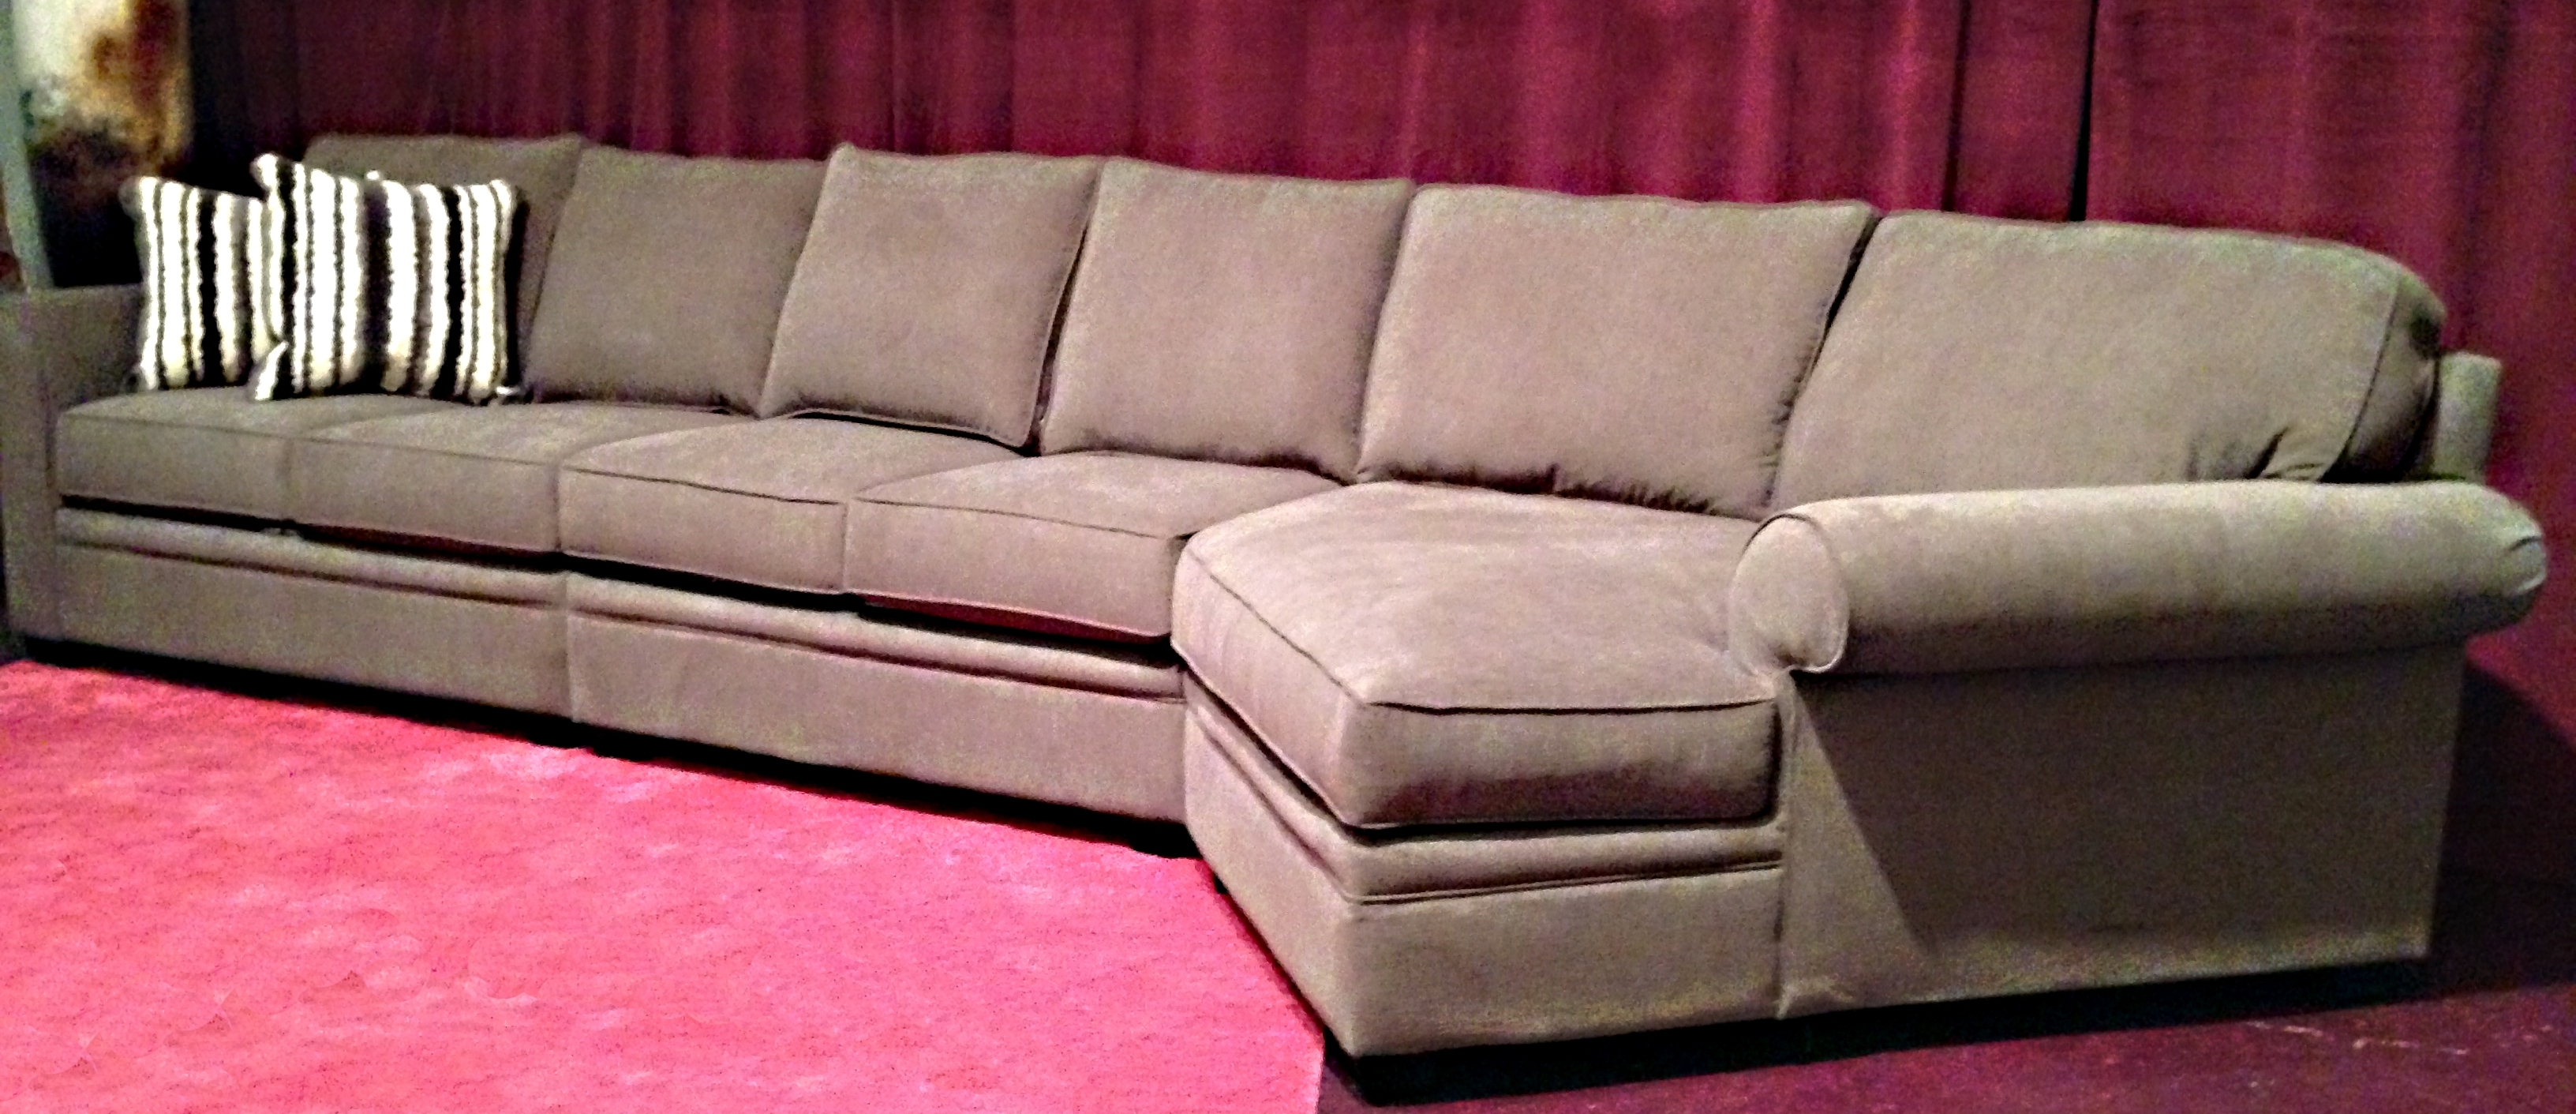 Most Up To Date Deep Cushion Sofas Inside Furniture Extra Large Sofa Oversized Couch Deep Cushion Couch From (View 11 of 15)